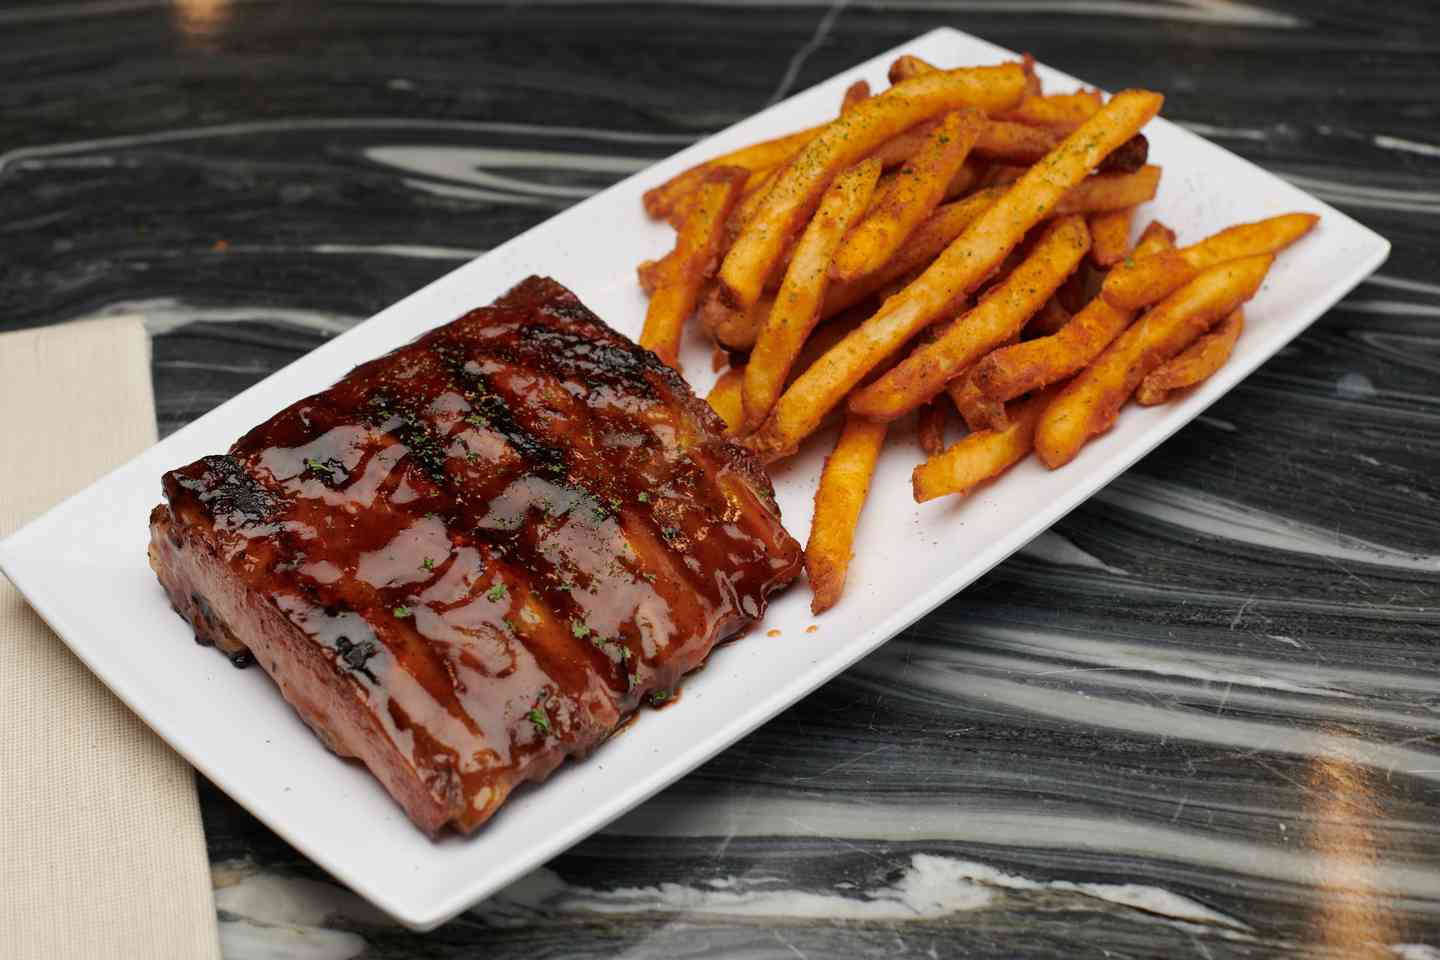 Mike's Honey Chipotle Ribs